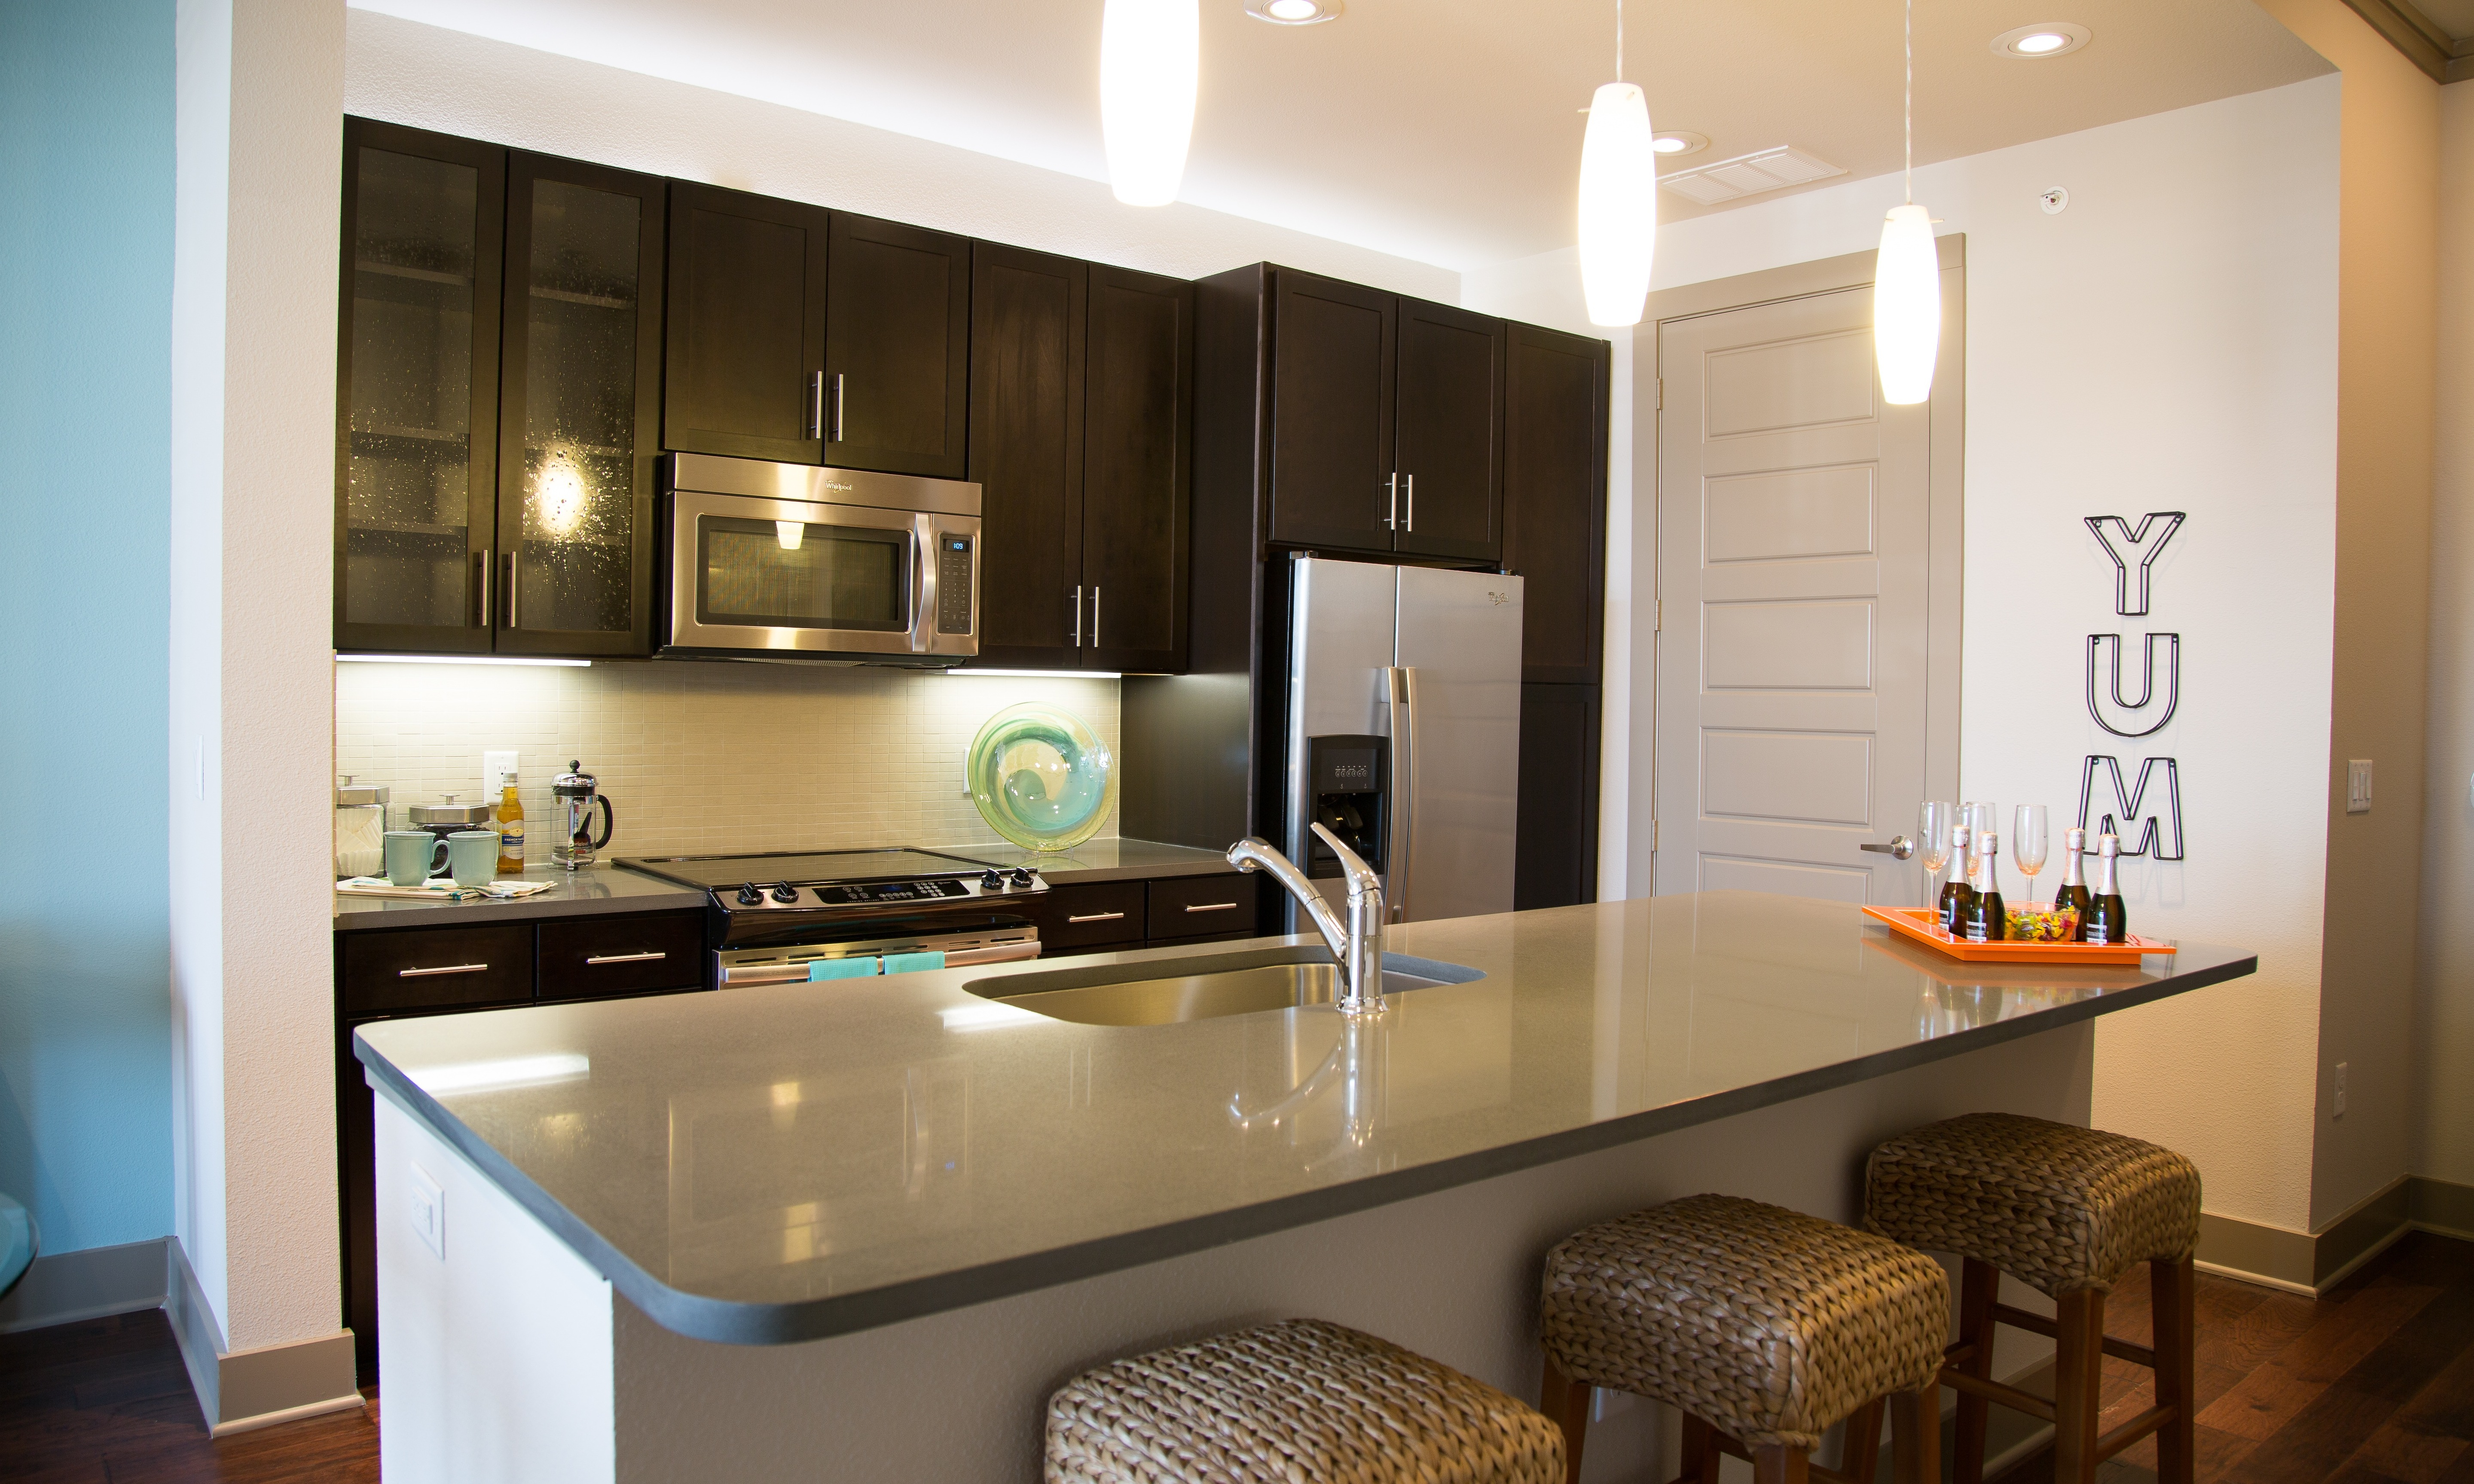 2 Bedroom Apartments In Dallas Tx Uptown Home Decor